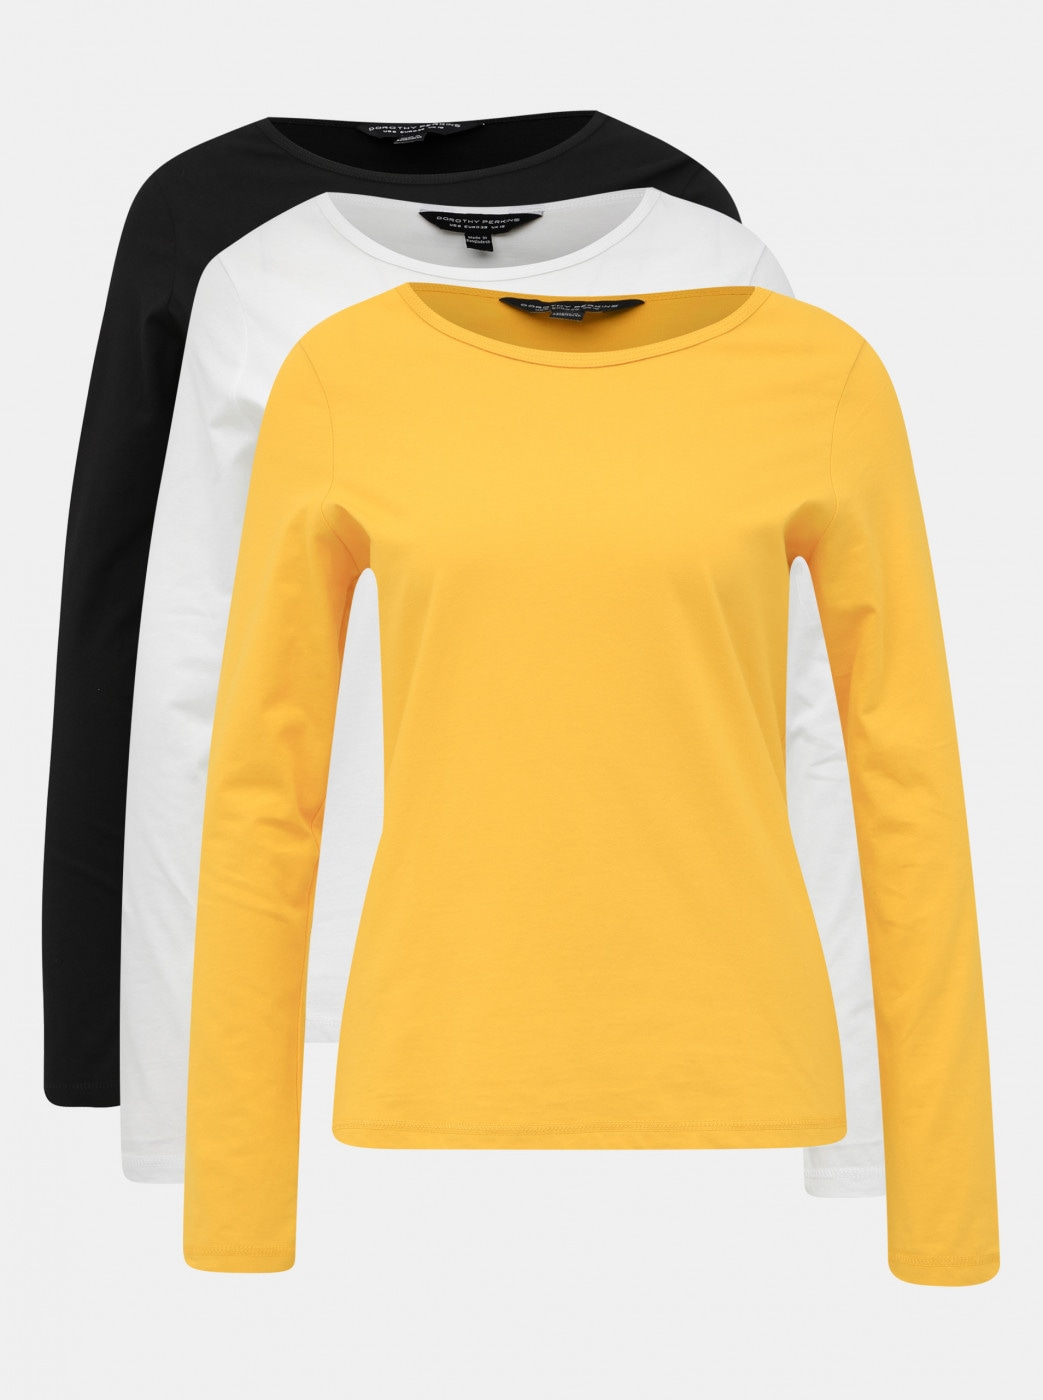 Set of three basic T-shirts in black, white and mustard dorothy perkins